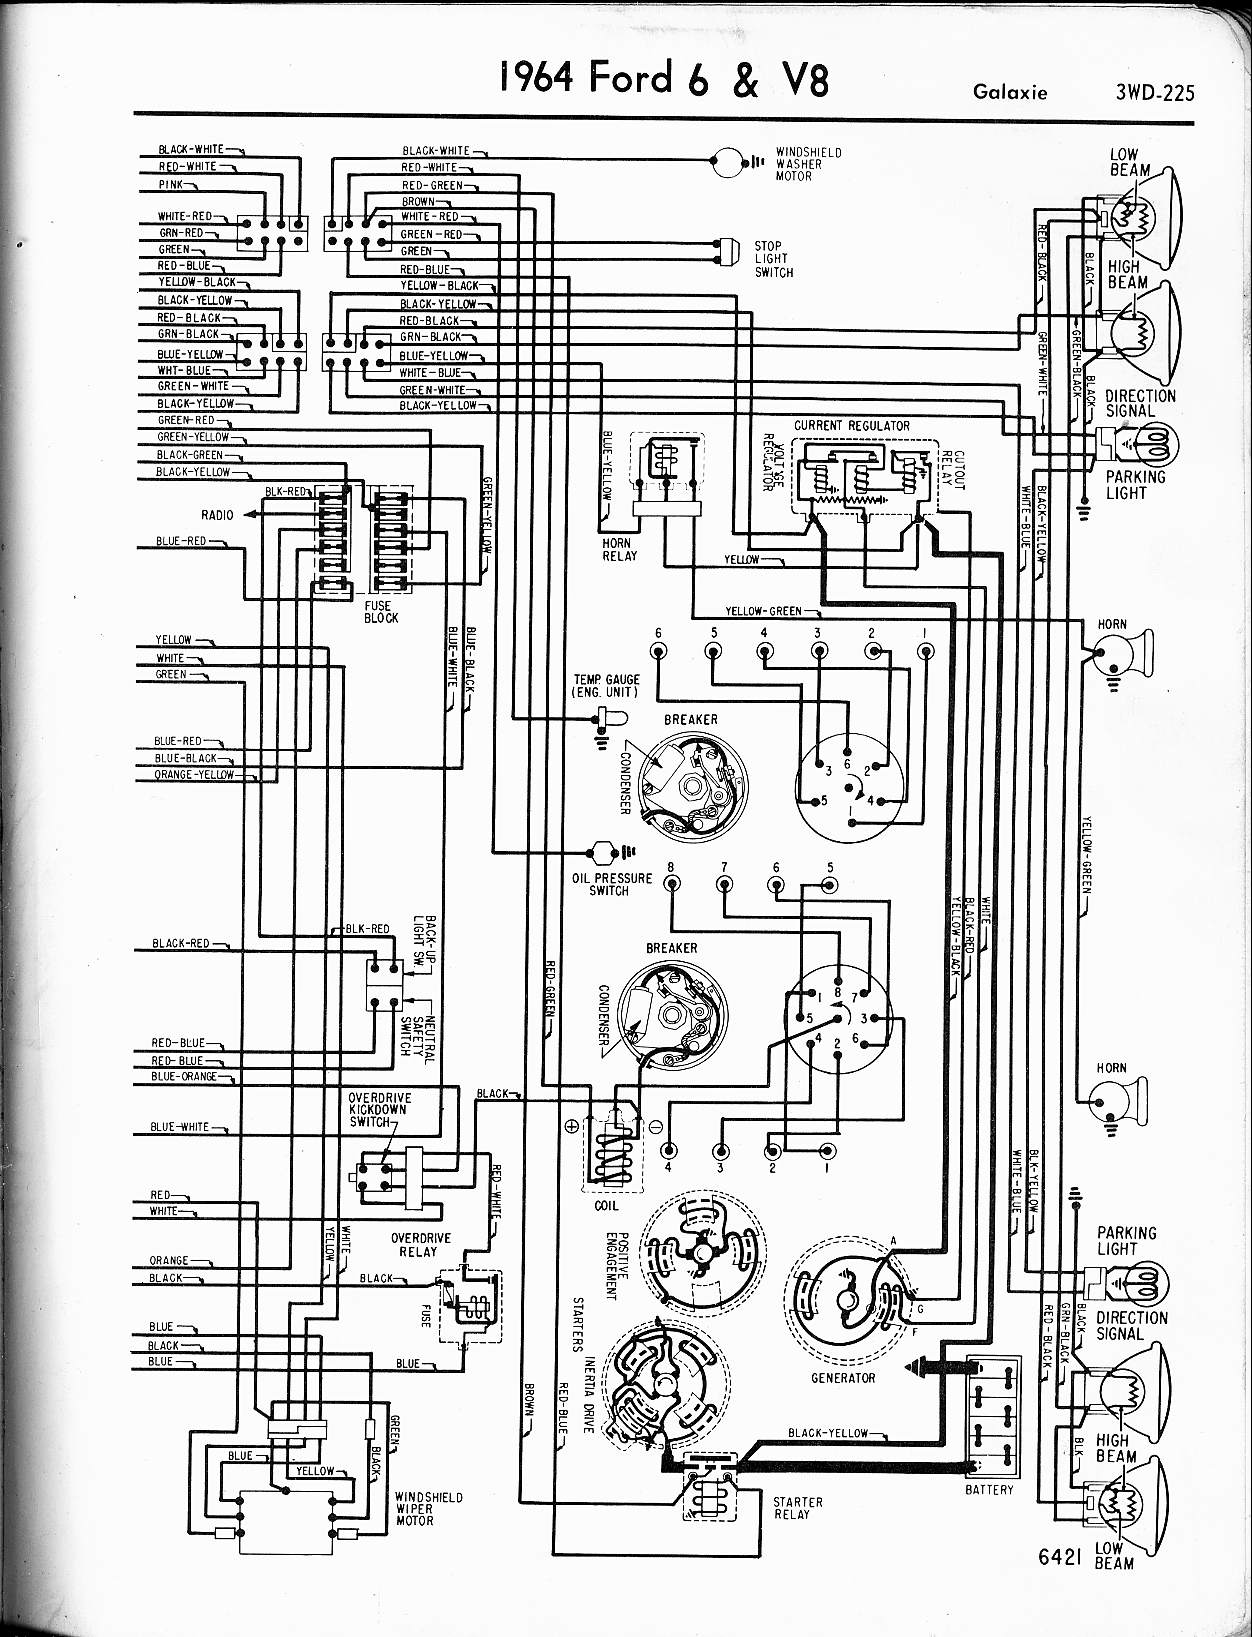 1964 ford falcon fuse box diagram